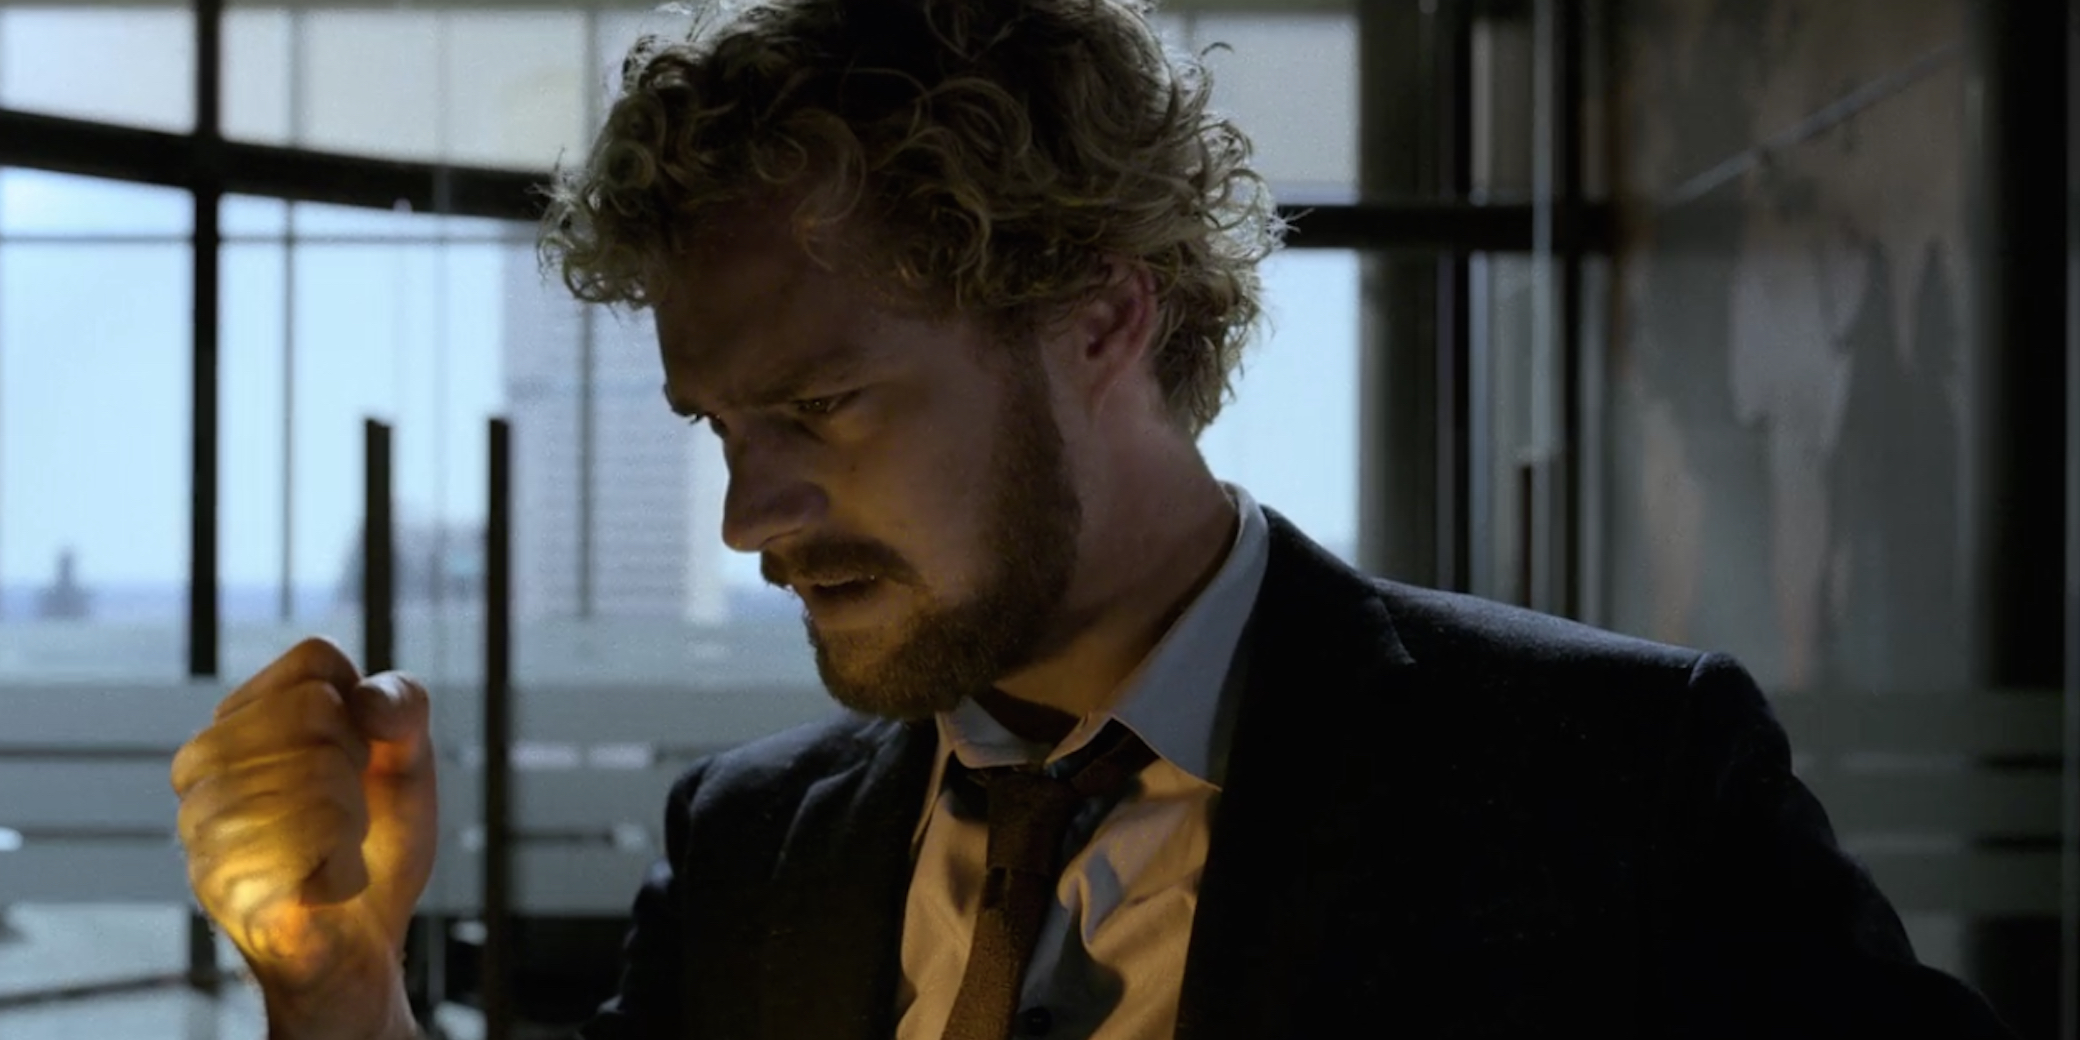 Danny in Iron Fist 1x07 Felling Tree With Roots